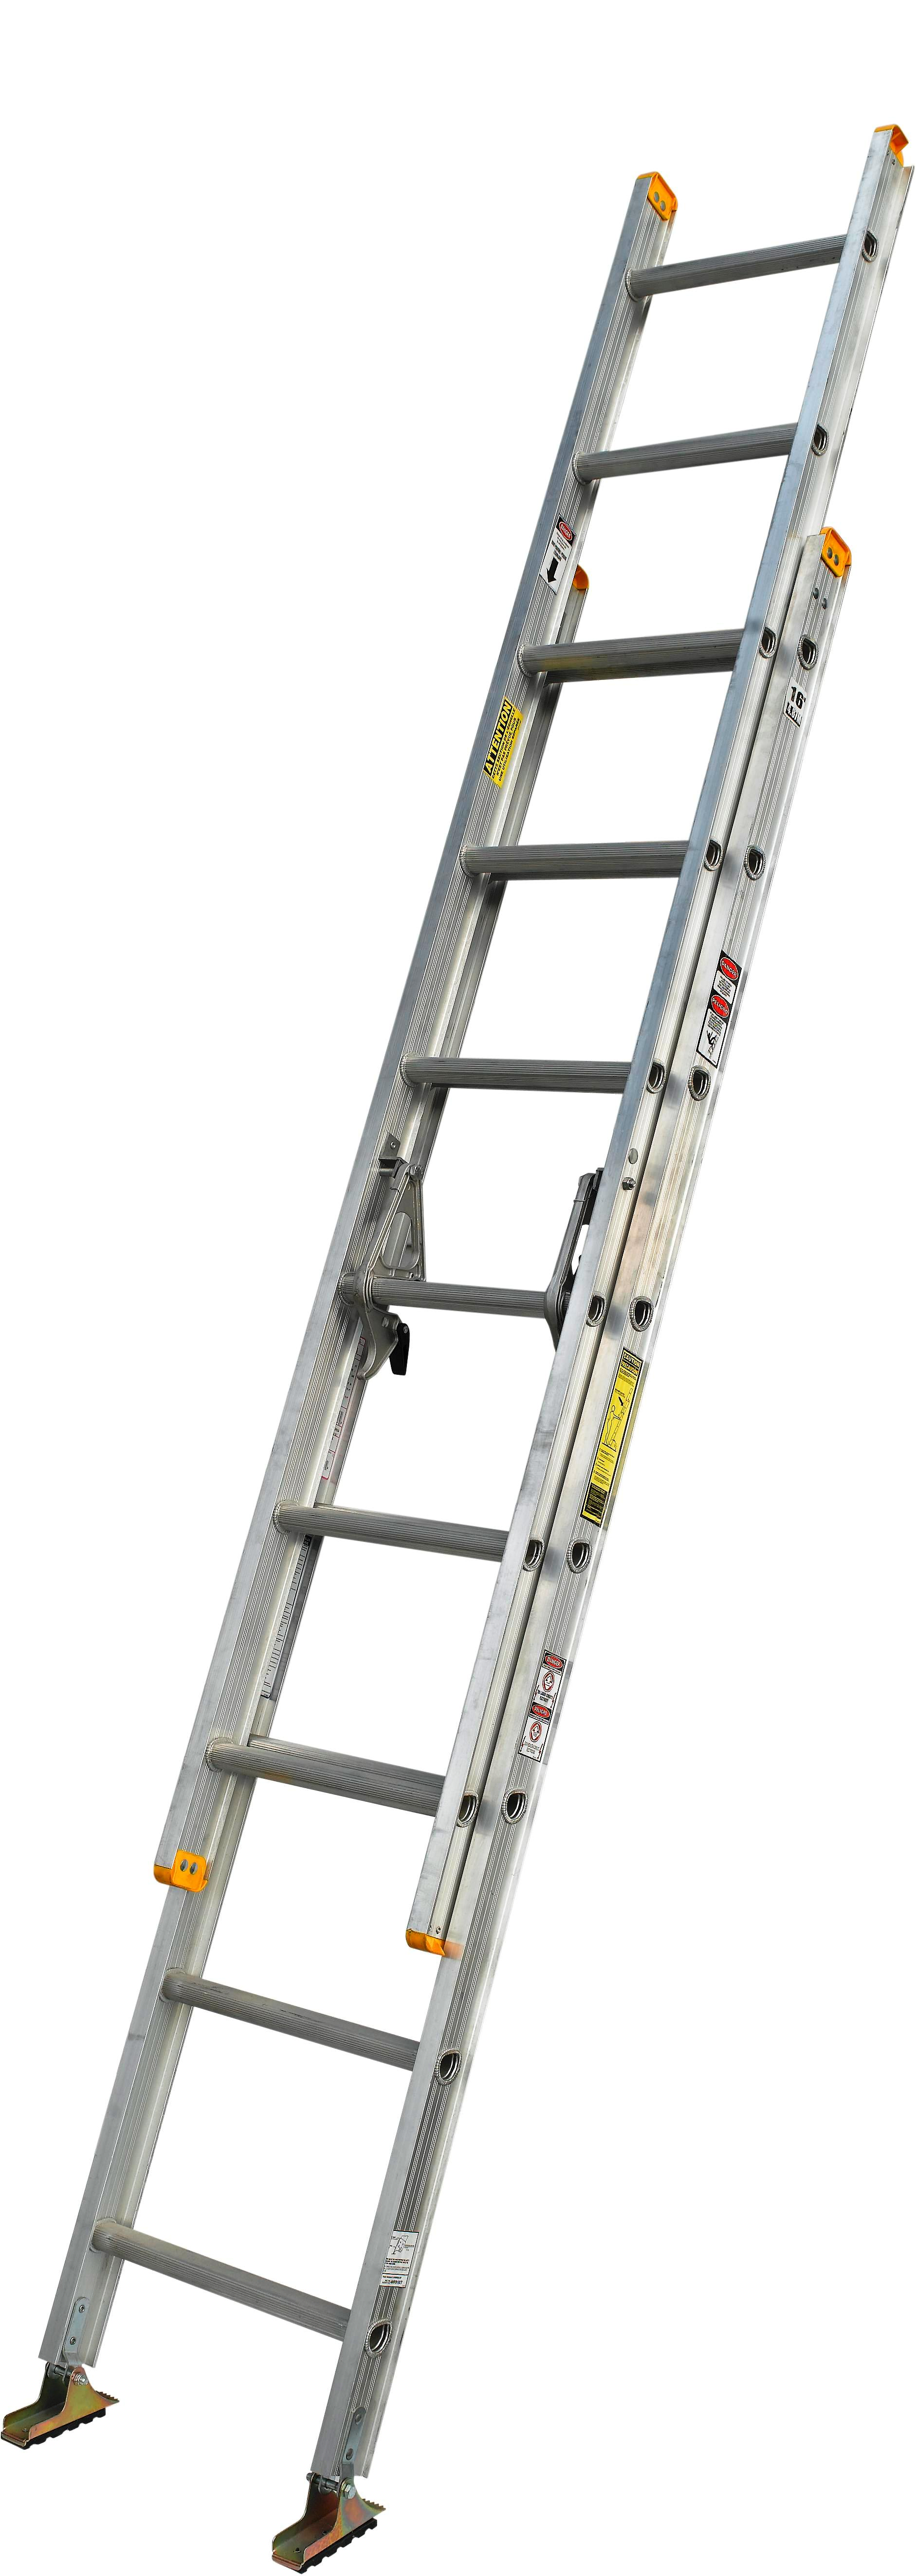 Allright Ladder And Scaffold Co